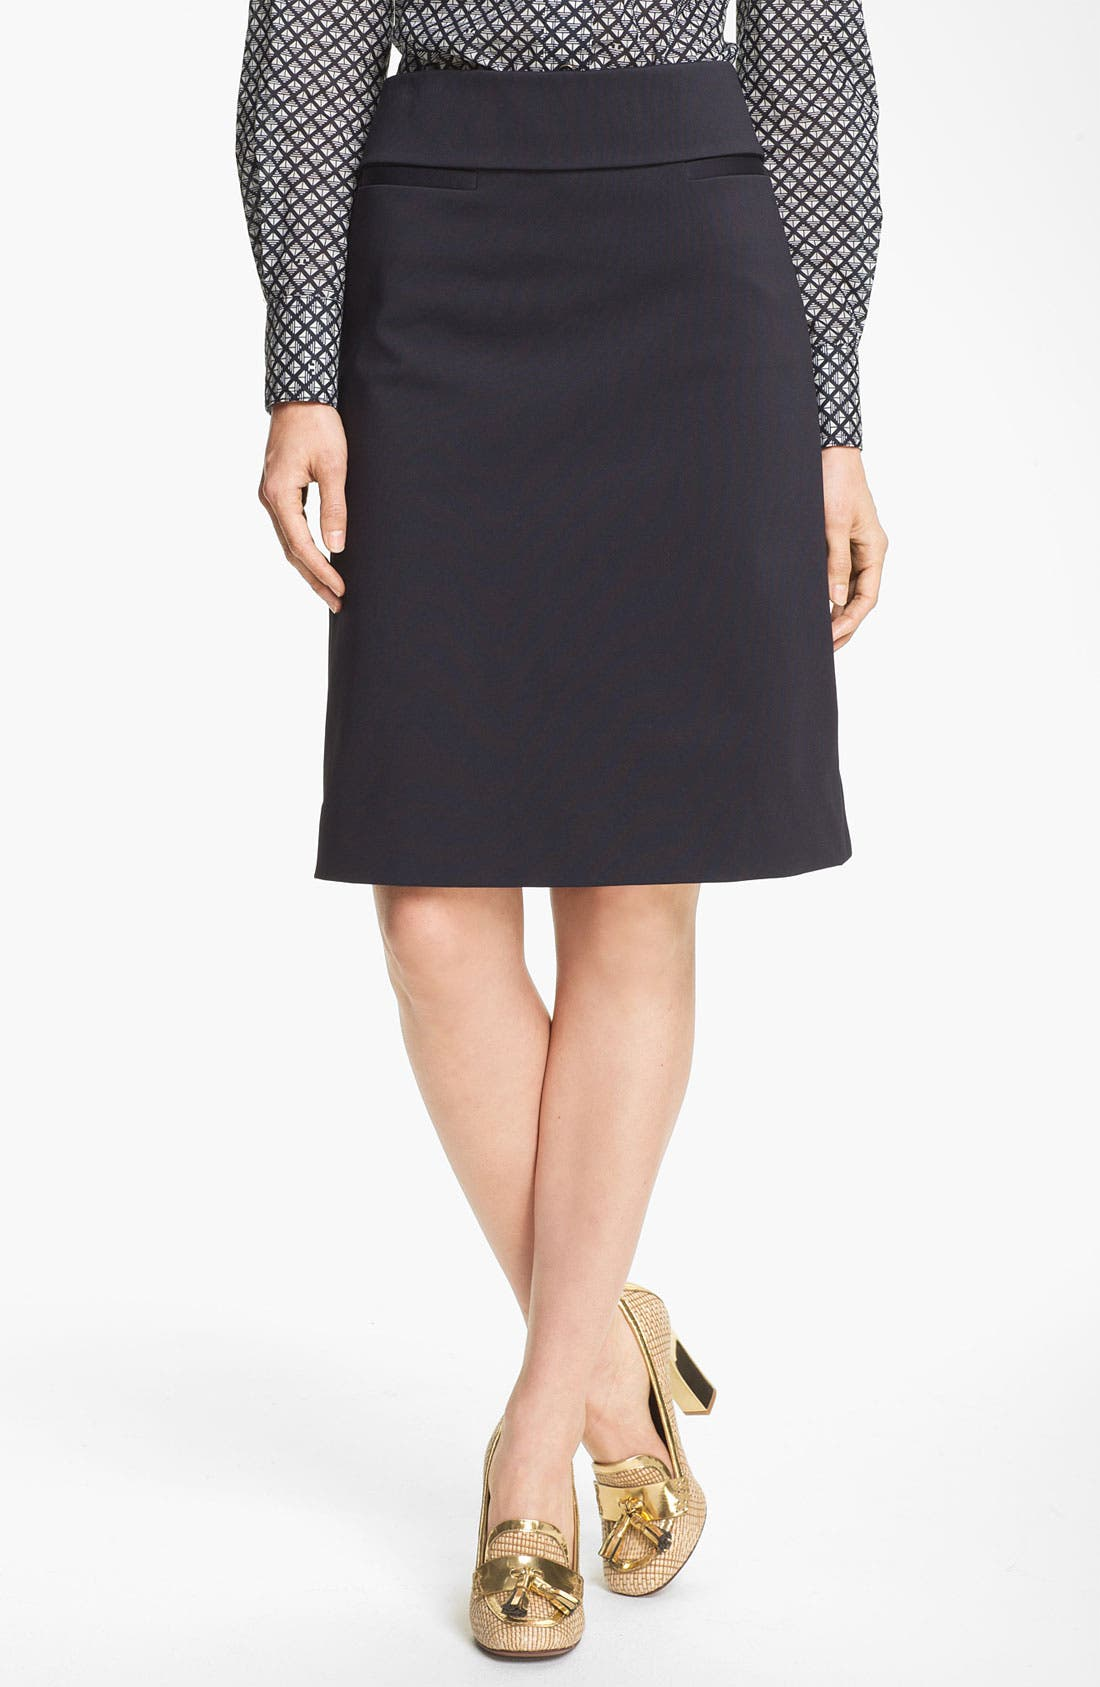 Alternate Image 1 Selected - Tory Burch 'Isabella' Skirt